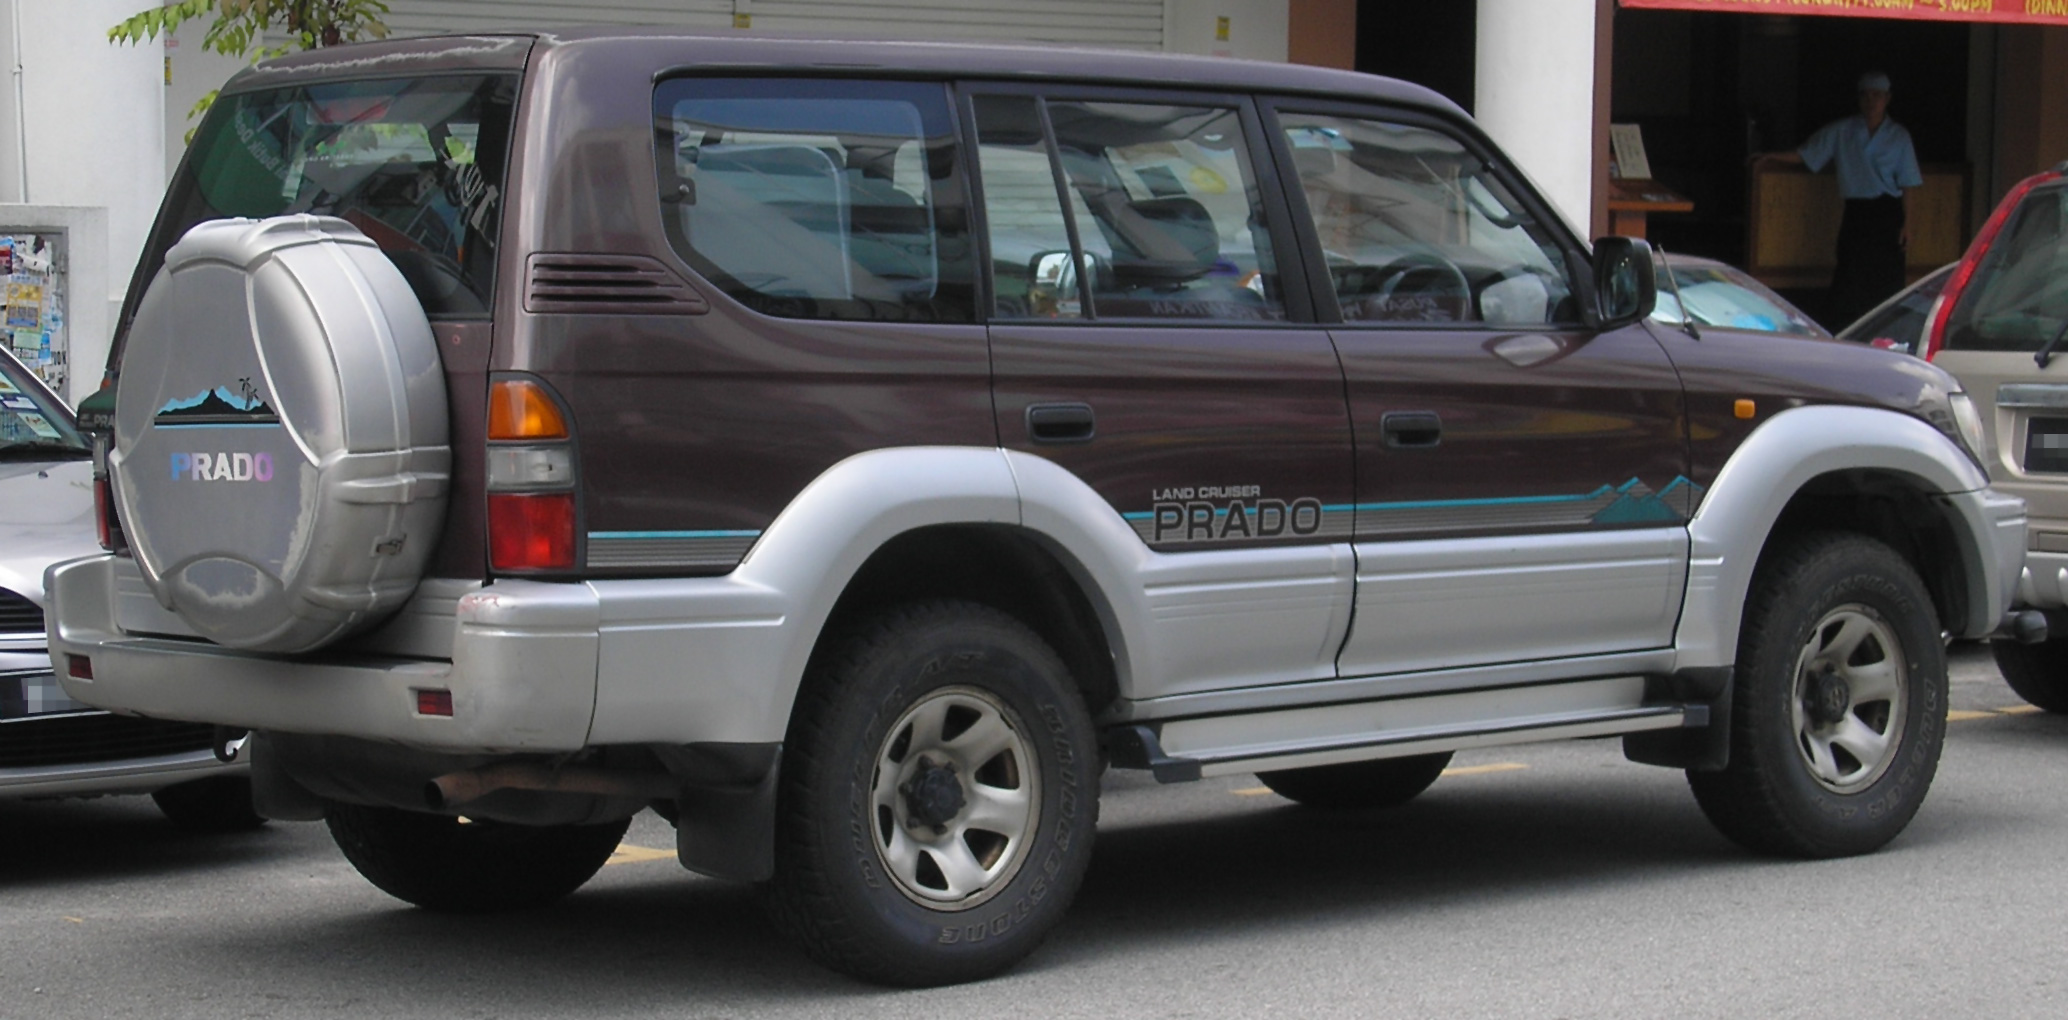 Wallpapers Toyota Land Cruiser Prado 5 Door Uk Spec 150 2009 197707 1024x768 also ment 5463 besides 2018 Toyota Land Cruiser Prado Surfaces Early On Instagram 118168 together with File Toyota Land Cruiser Prado  second generation   rear   Serdang also 2560x1600. on land cruiser prado